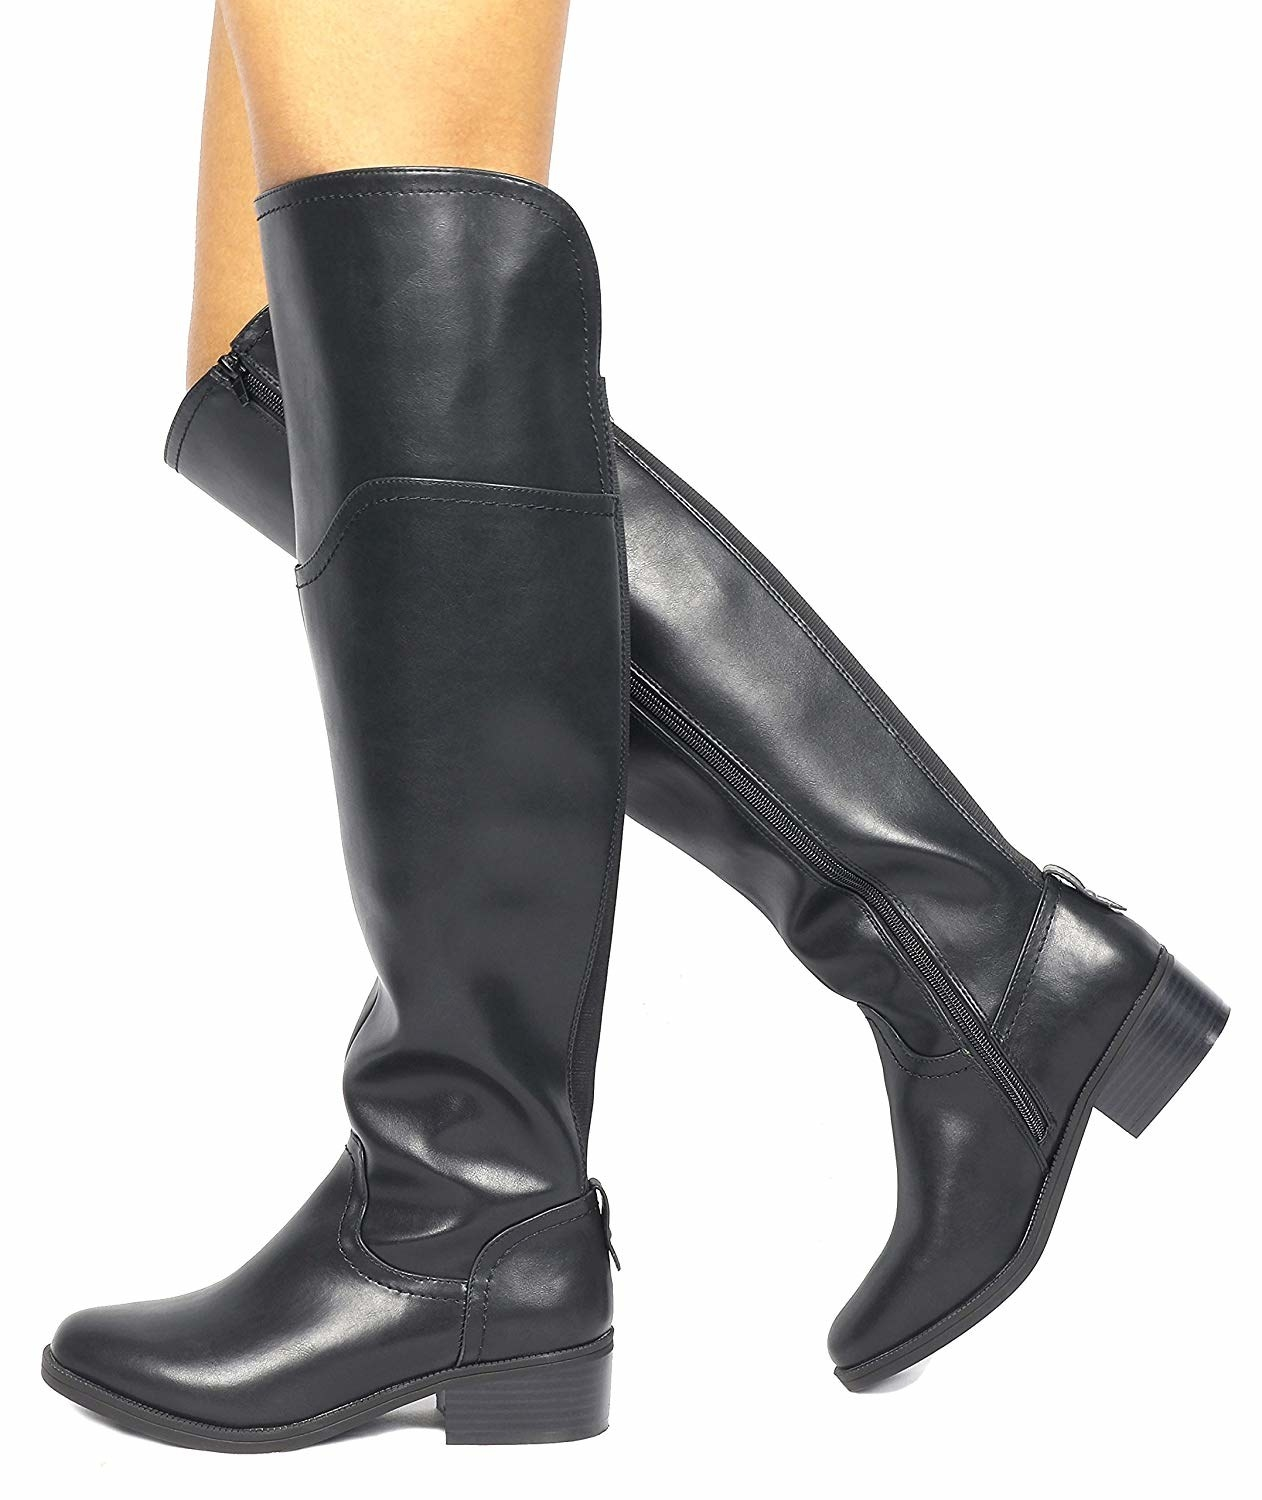 99d89c07aa45a 27 Gorgeous Pairs Of Boots You Can Get On Amazon